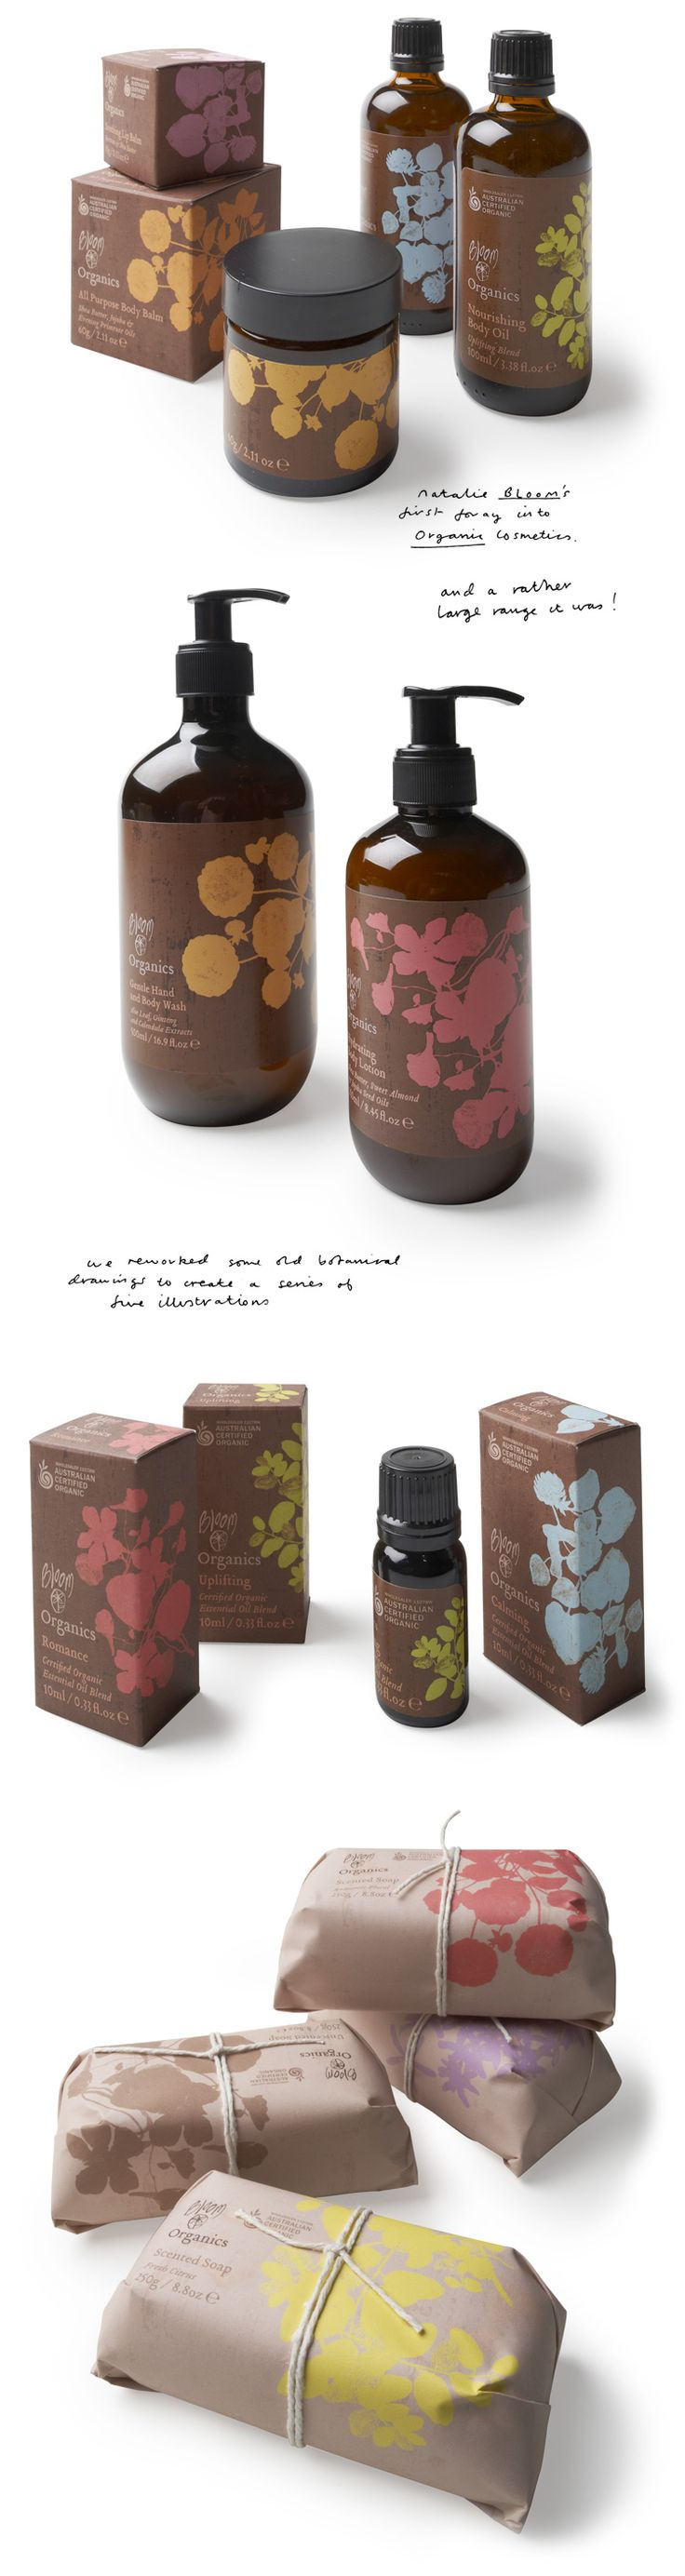 bloom organics by mahonandband.com. The solid bloom color against the brown. Modern, simple, clean. Feels organic. Love the tied up soaps.